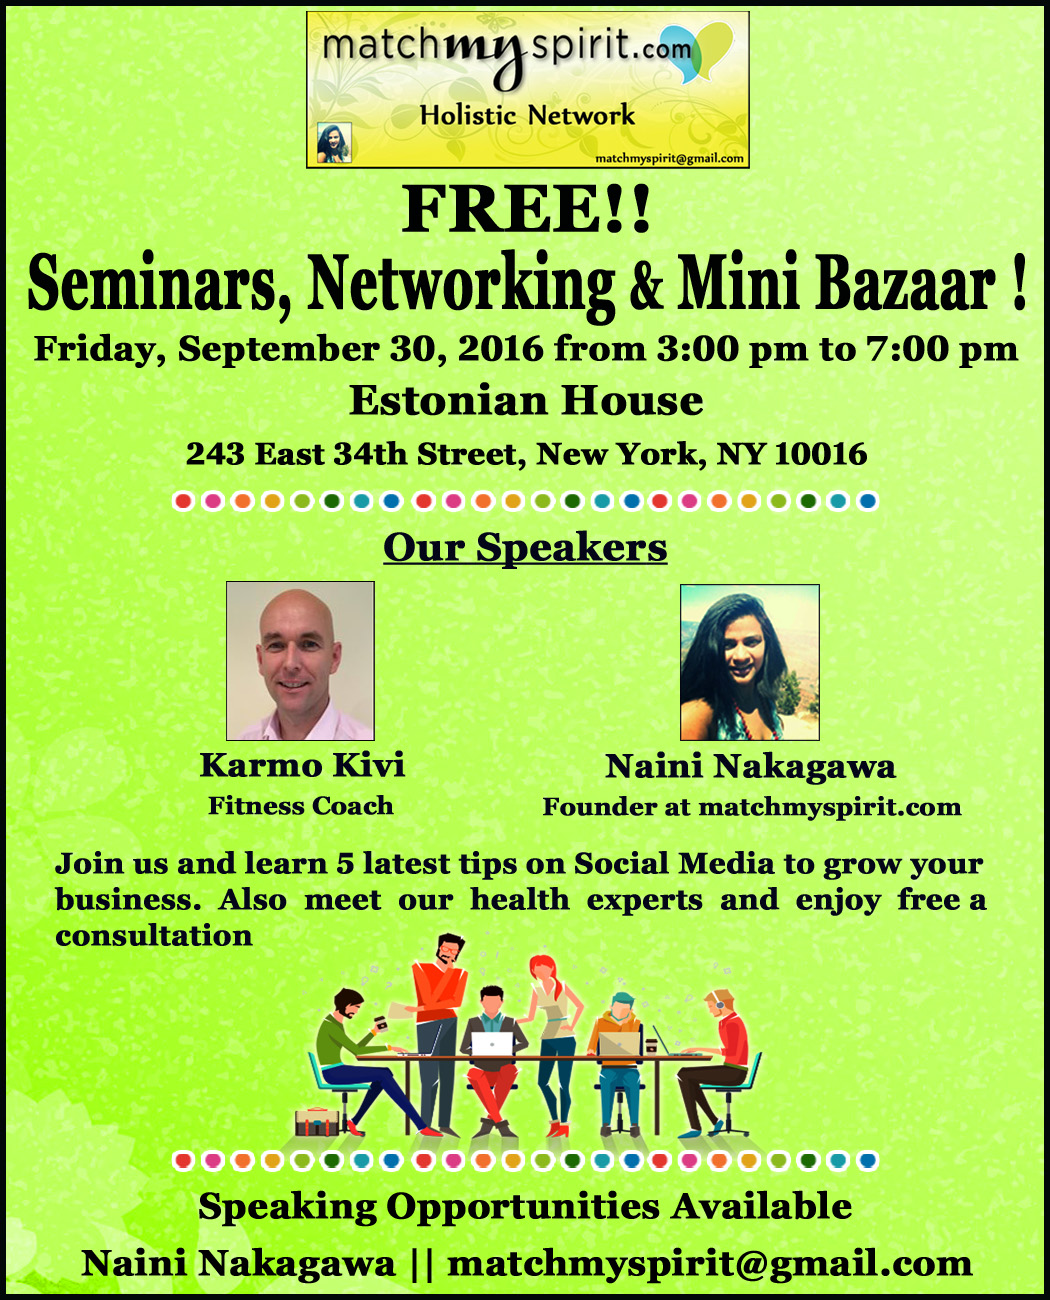 FREE!! Seminars, Networking & Mini Bazaar !